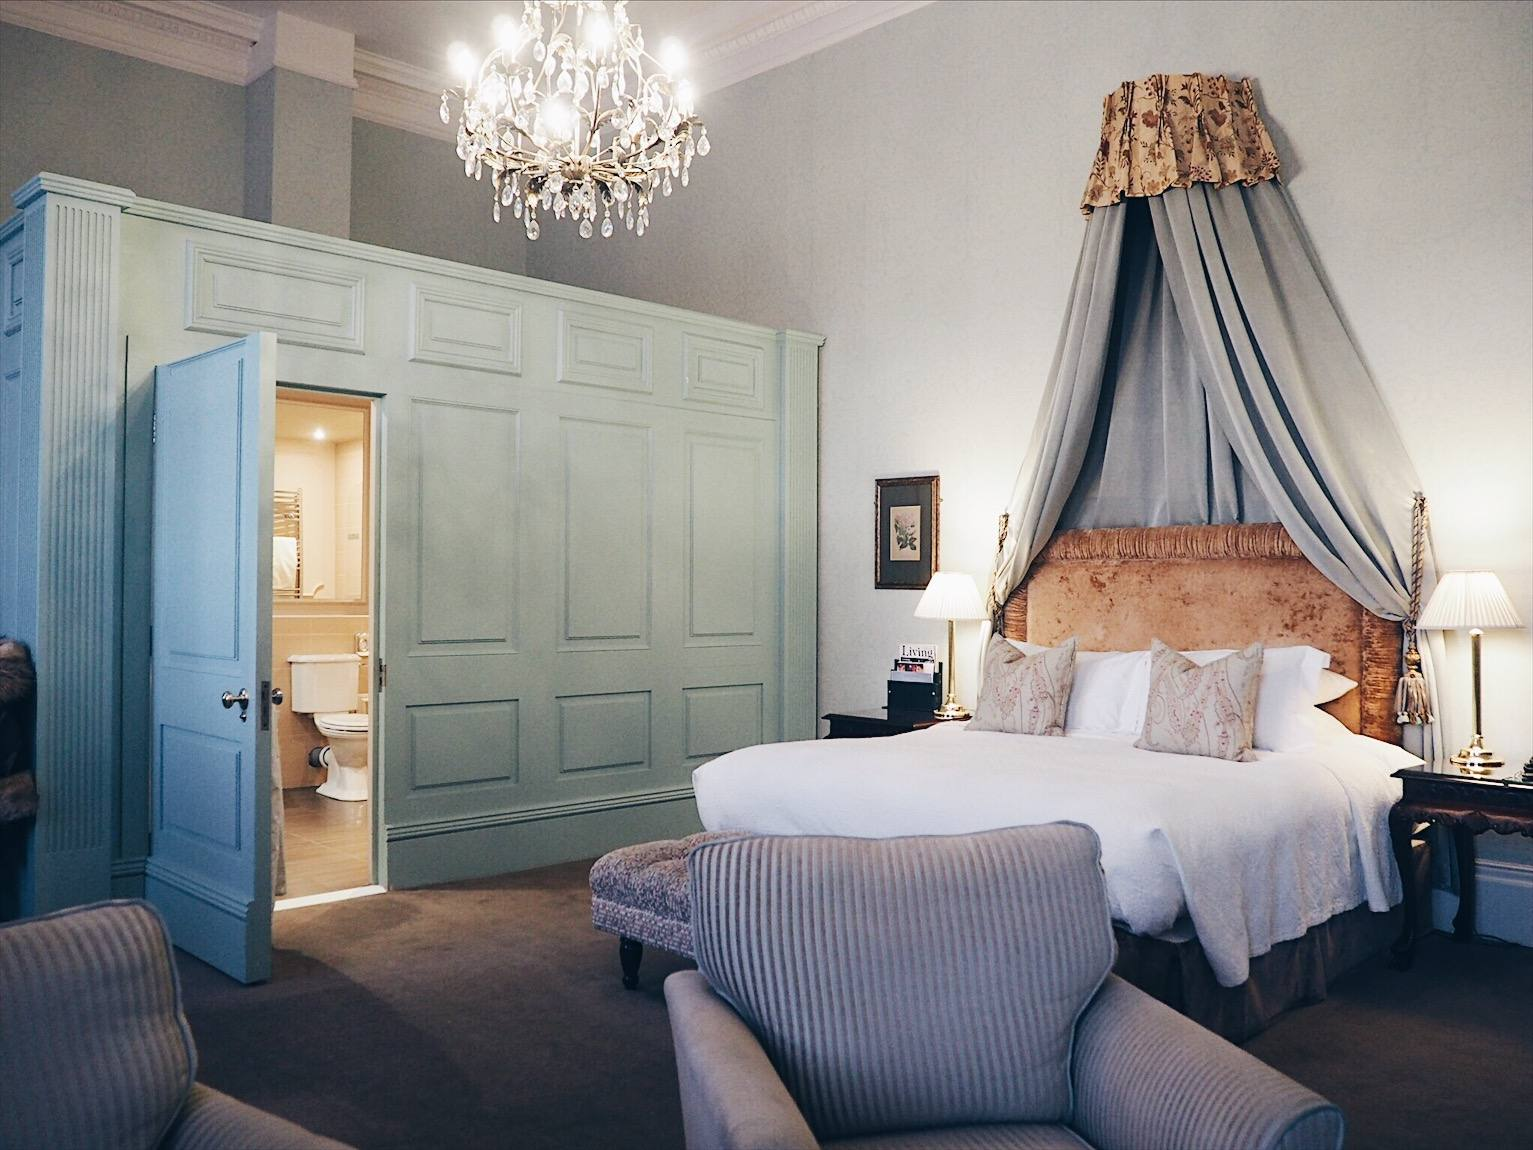 Wynyard hall hotel review: Frances Anne Suite